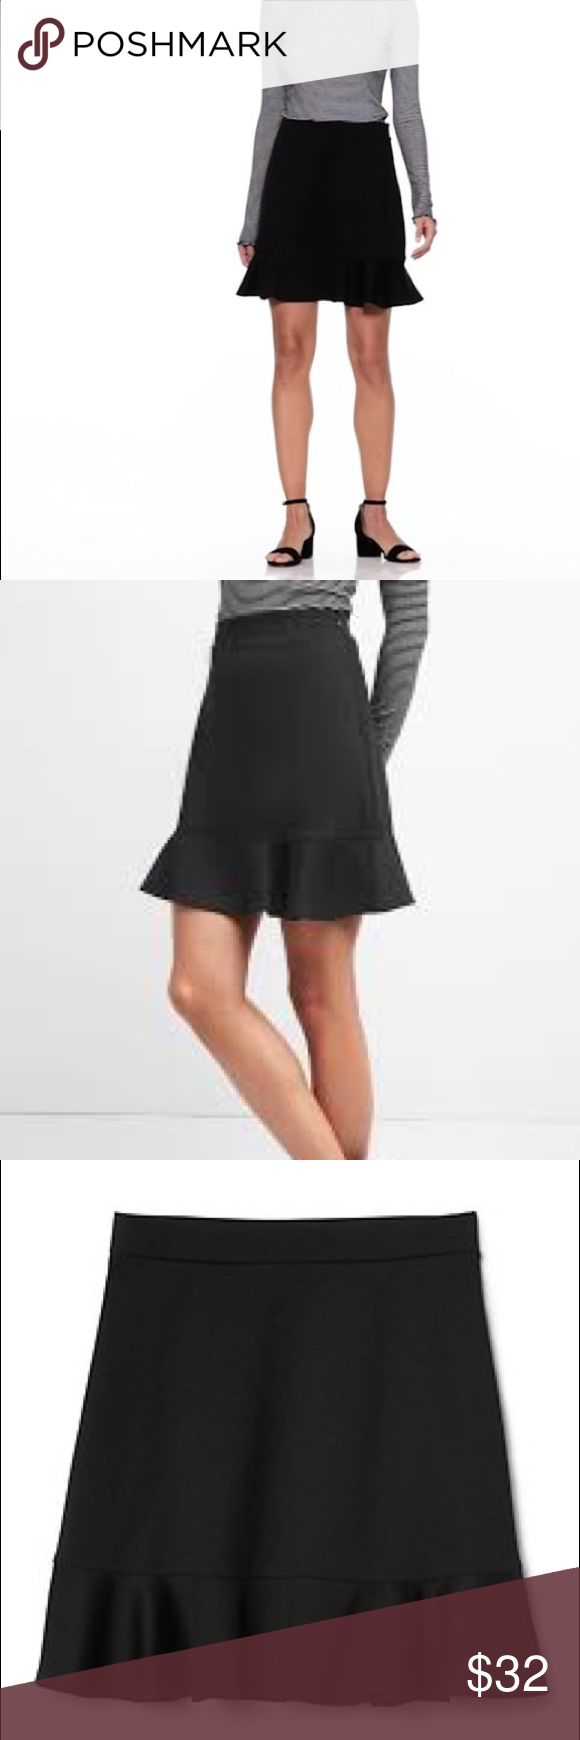 GAP Flippy Tulip Skirt-NEW with tags! GAP Flippy Tulip Skirt-NEW with tags! * Soft ponte knit. * Elasticized waist, invisible zip with hook and eye closure at back. * Ruffle hem. * 70% Polyester, 26% Rayon, 4% Spandex.  * Sits at the upper waist. * Tulip silhouette hugs your curves. * Hits at mid thigh. GAP Skirts Circle & Skater